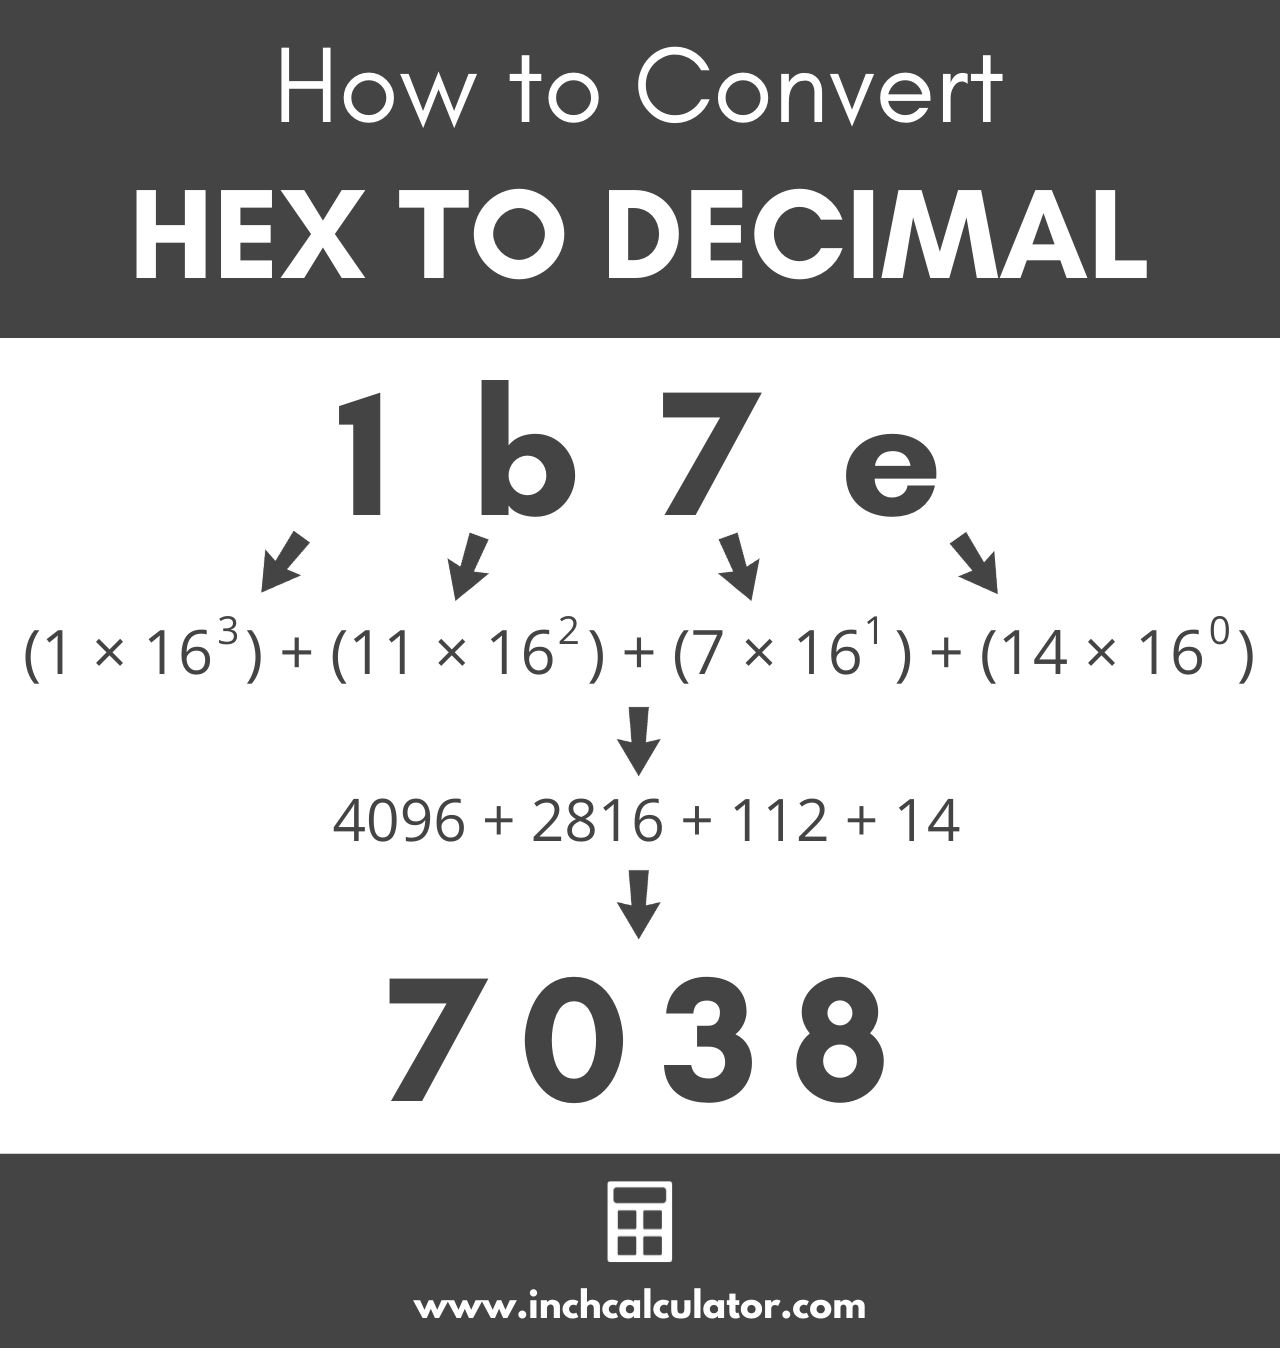 graphic showing how to convert a hex number to decimal